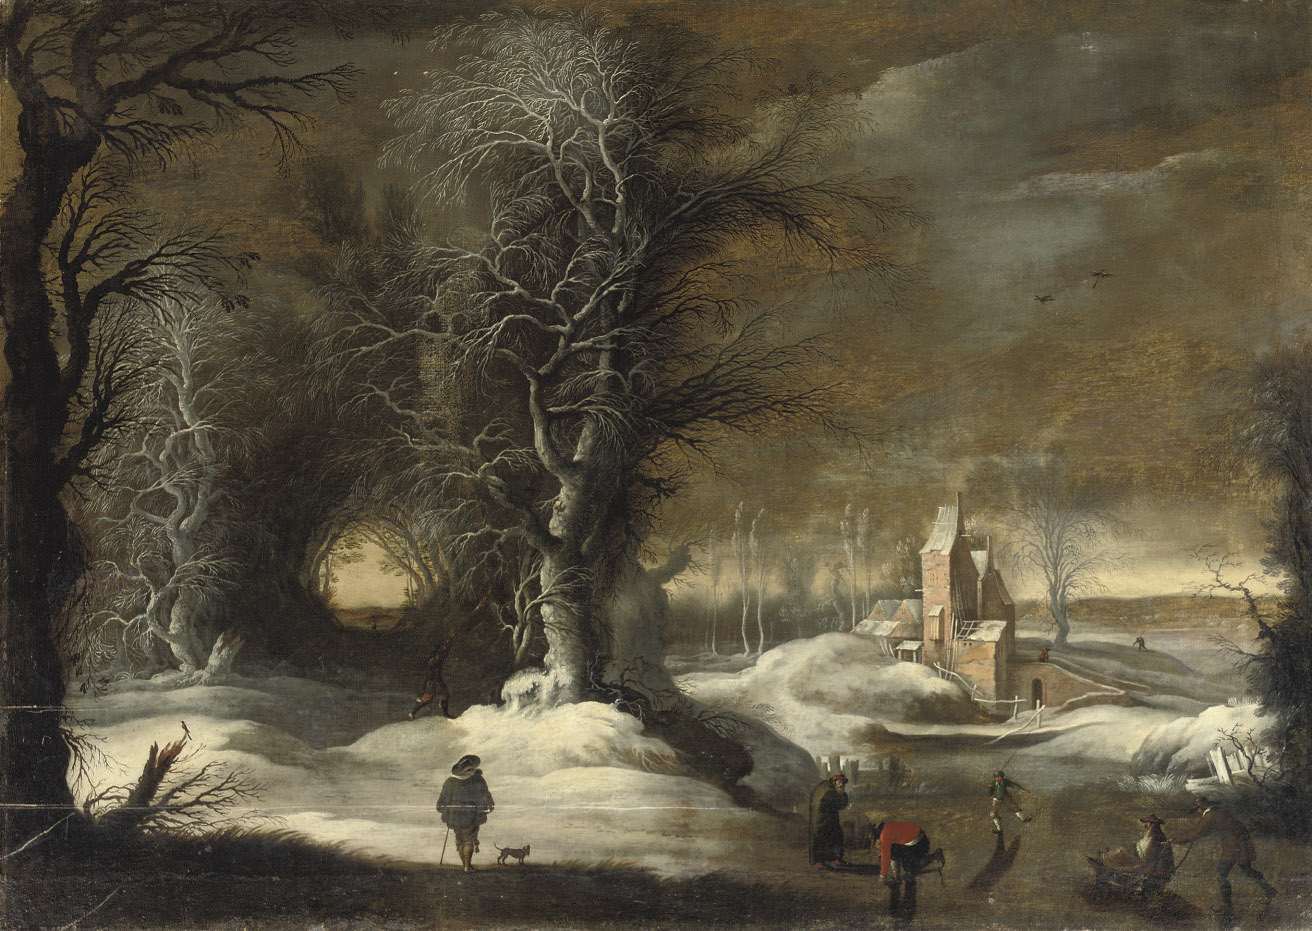 A winter landscape with figures sleighing and skating